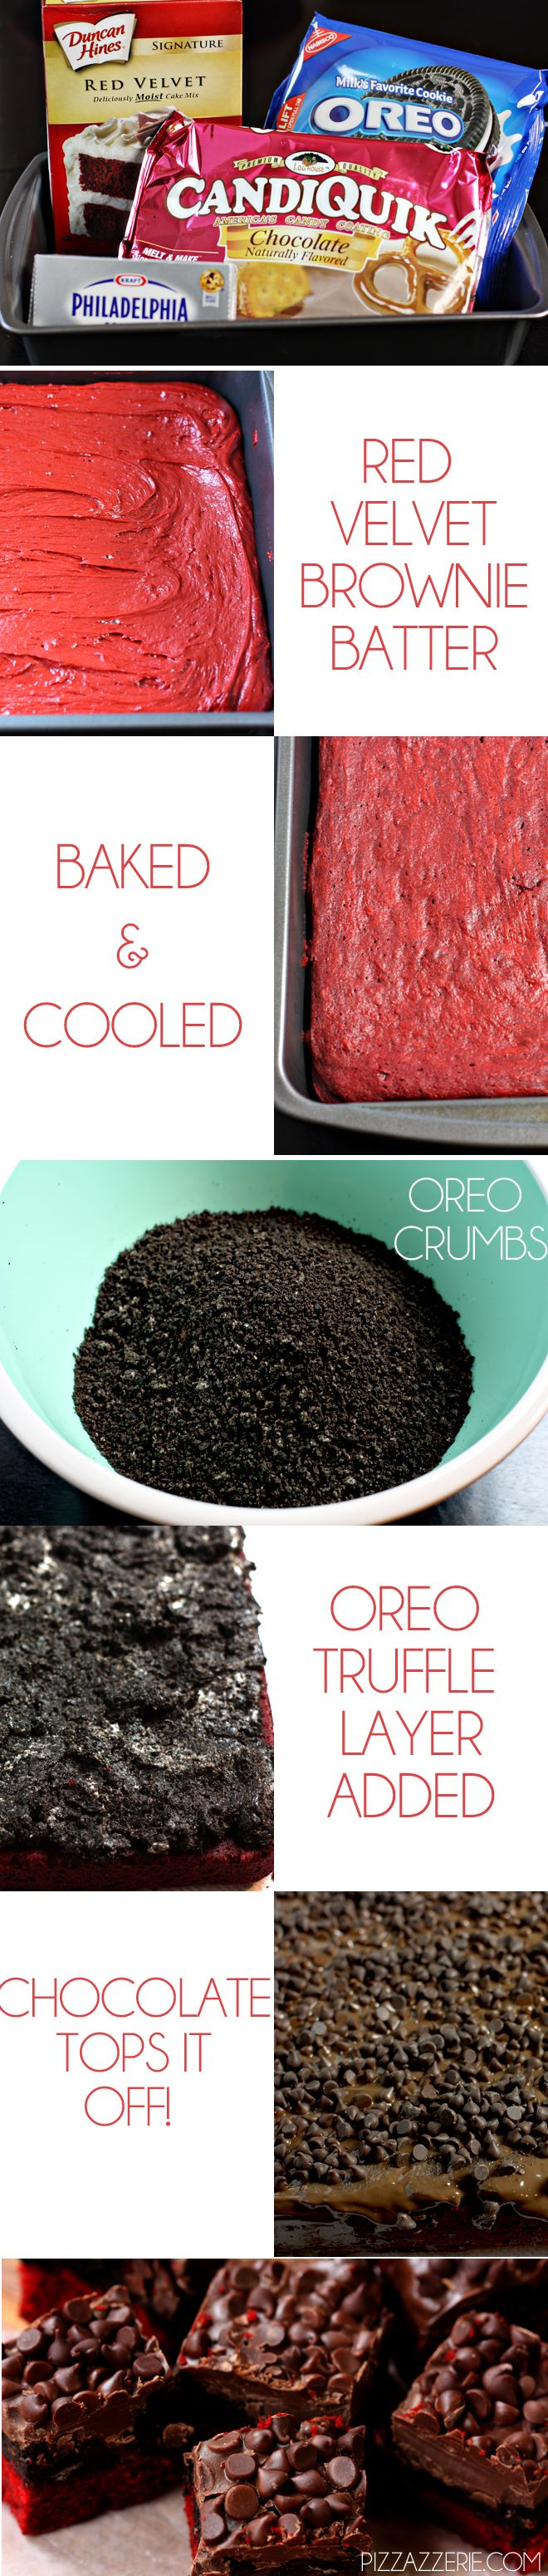 How to make Red Velvet Oreo Truffle Brownie Bars! THESE ARE SO GOOD! Won top chef at my work's potluck when I made them!